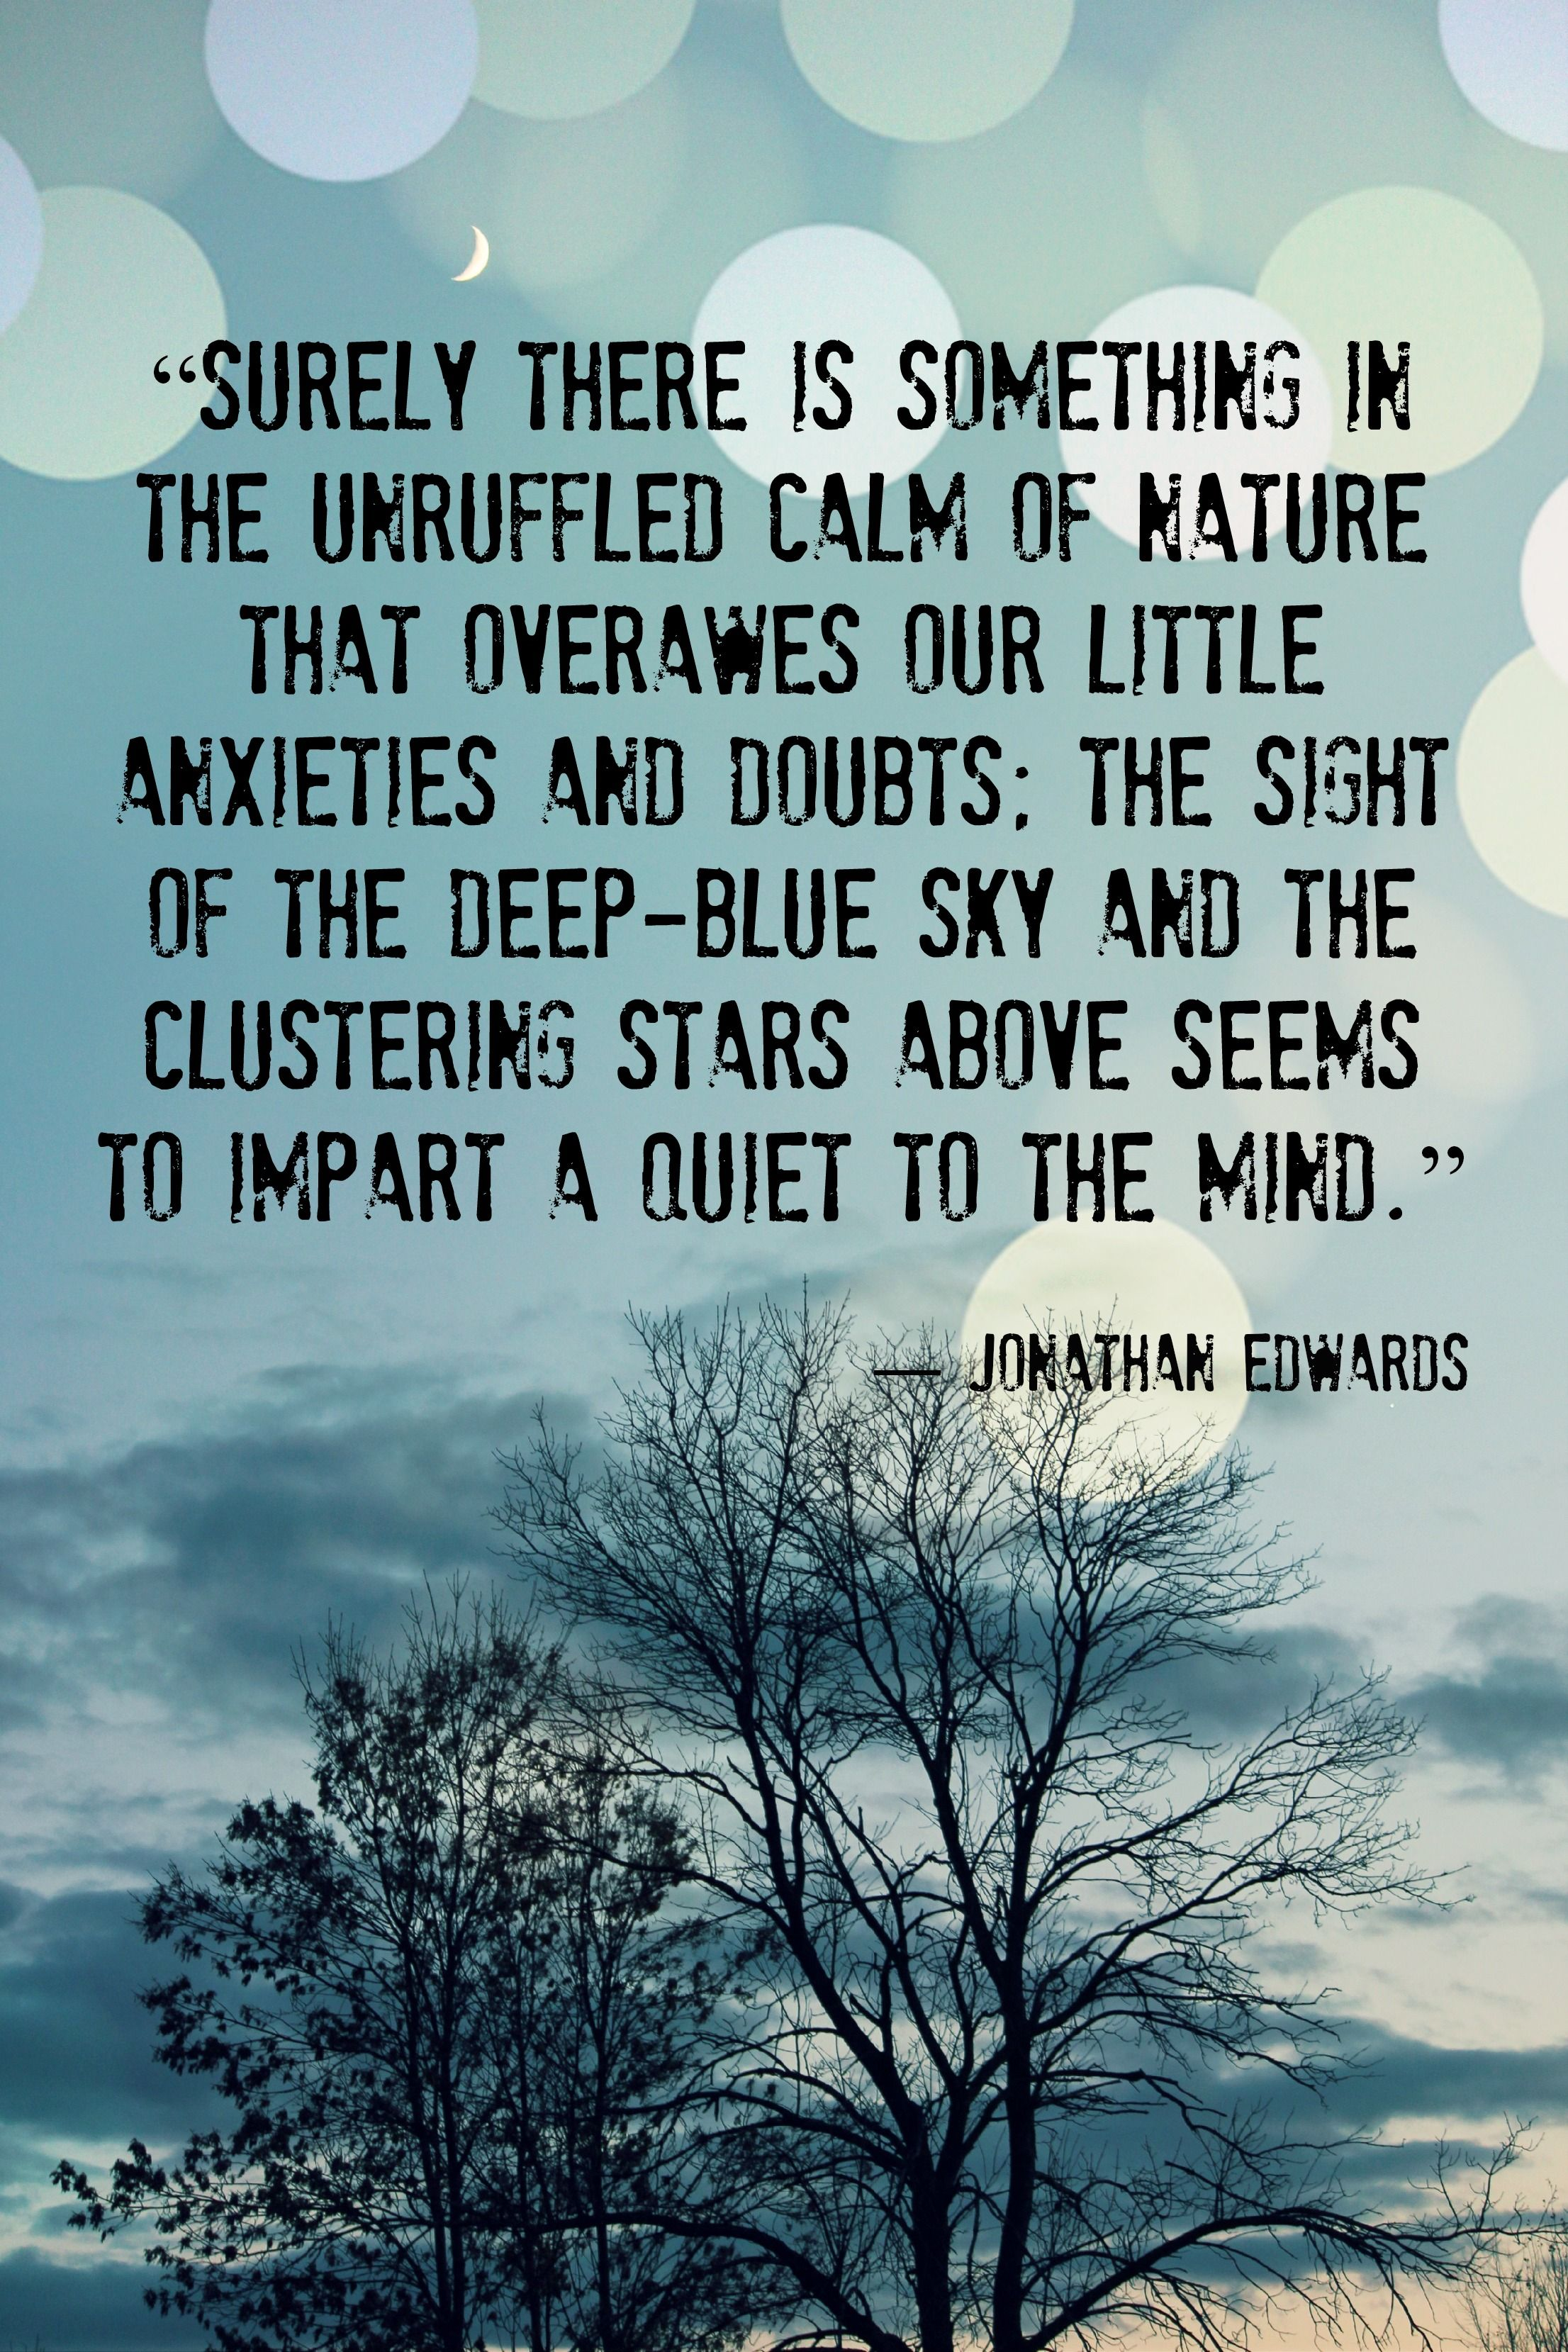 Jonathan Edwards Quotes Surely There Is Something In The Unruffled Calm Of Nature That